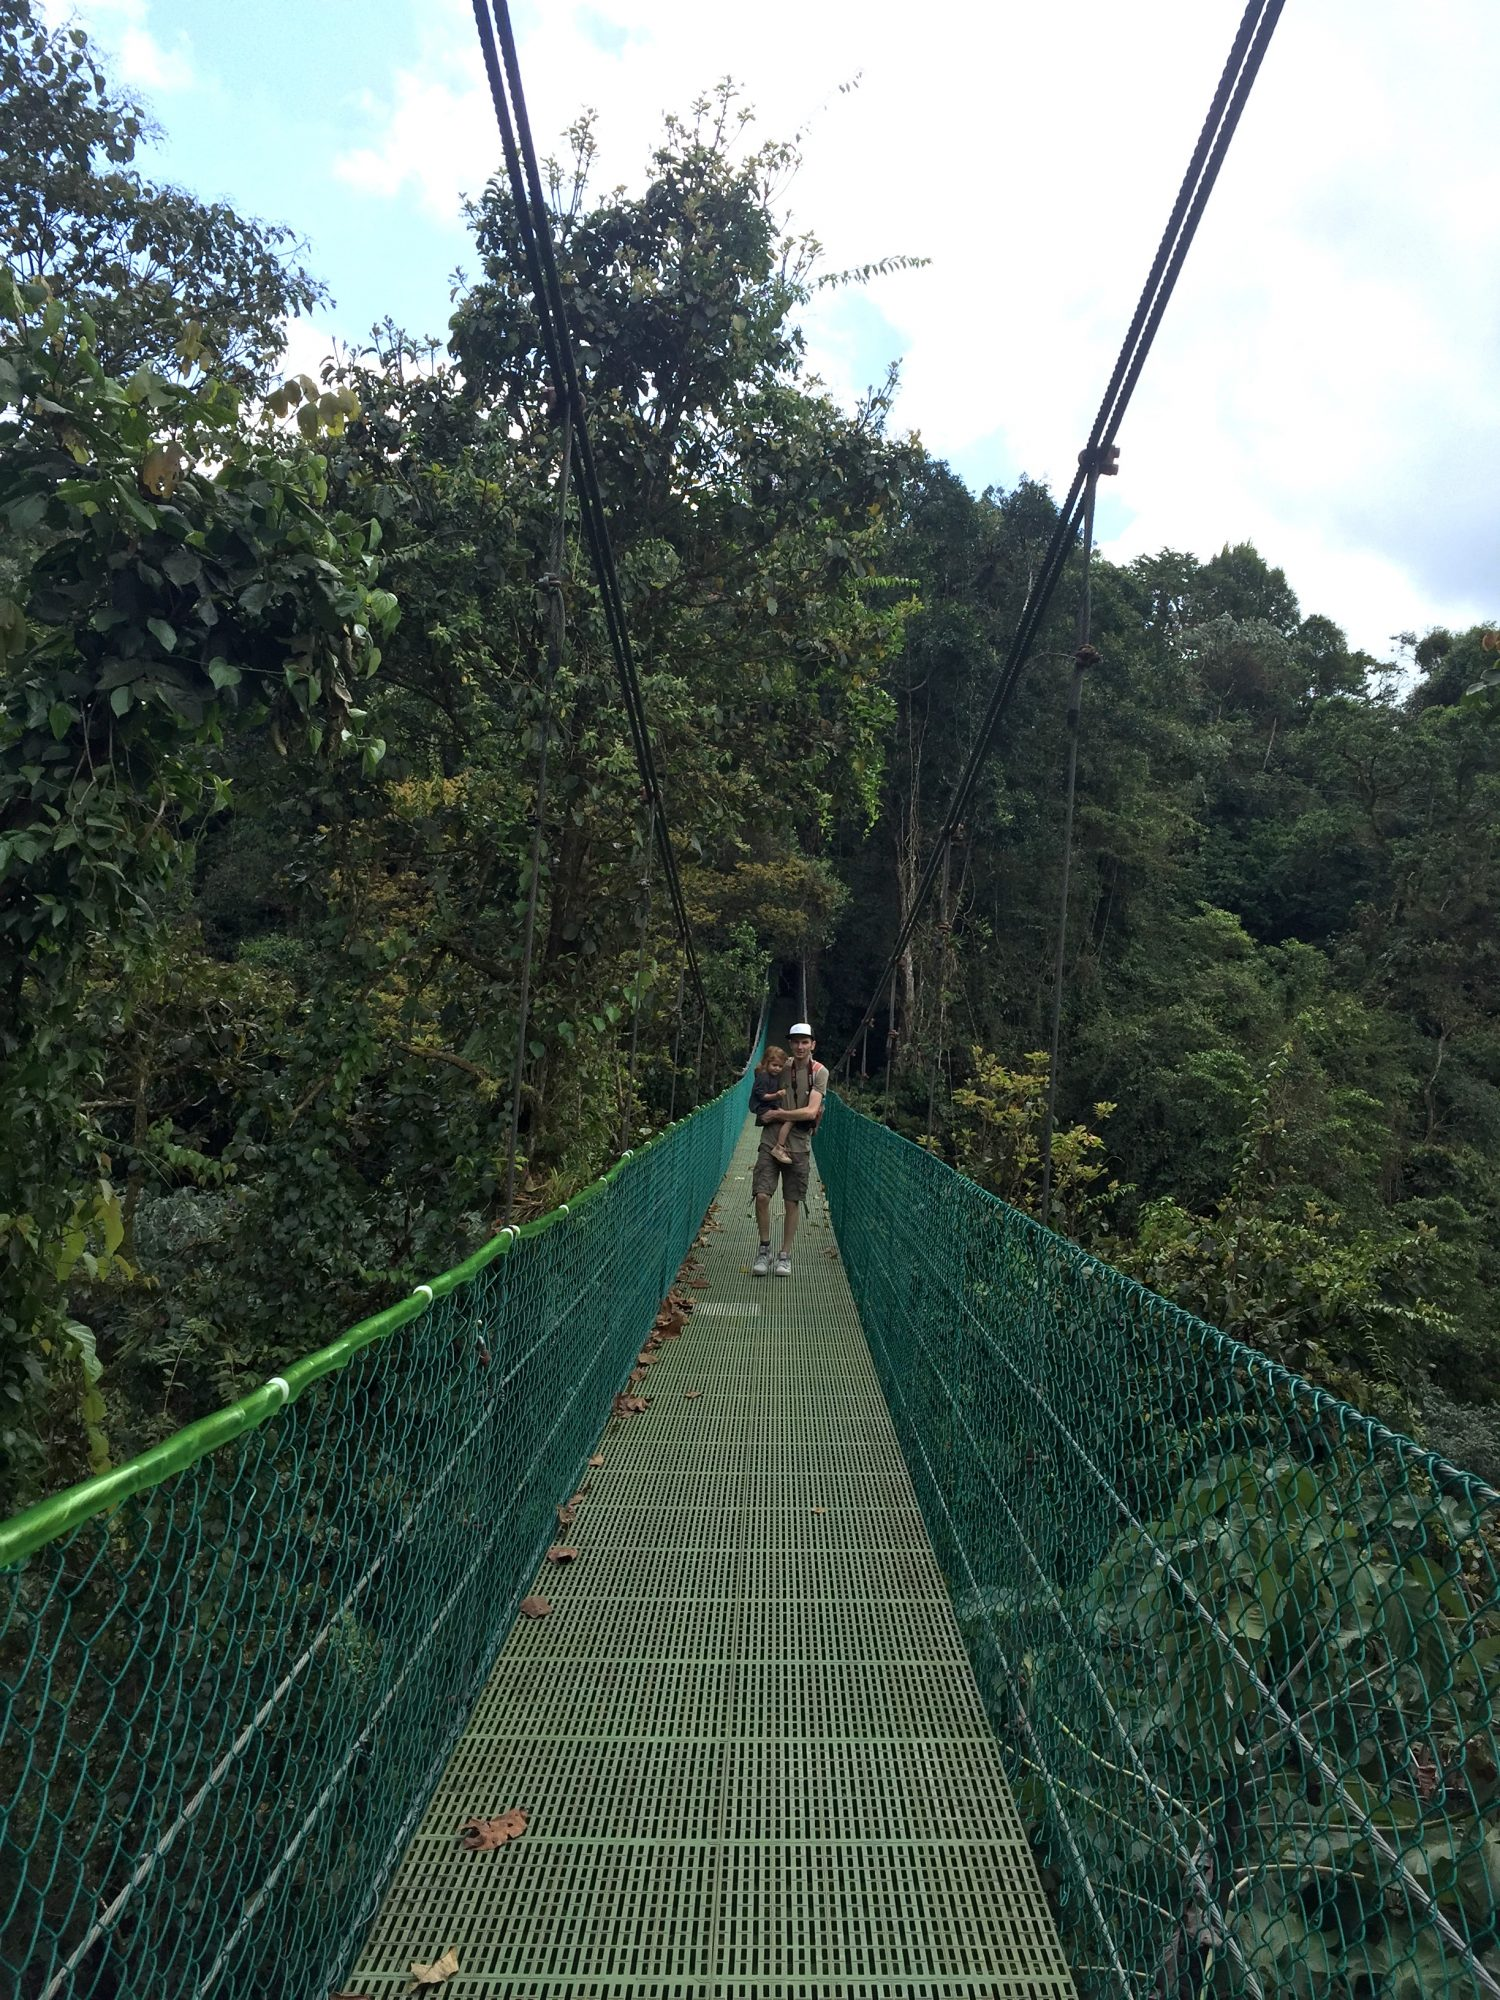 Ponts suspendus dans la jungle d'arenal au costa rica